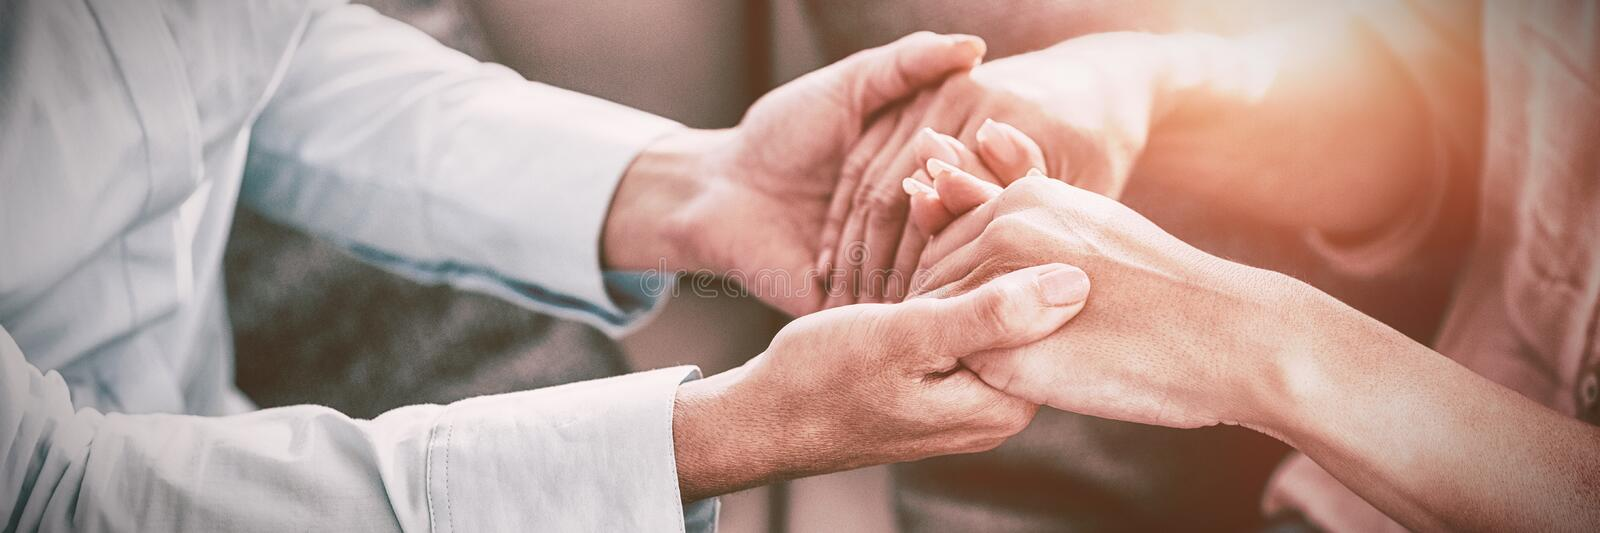 Midsection of therapist holding patient hands royalty free stock image